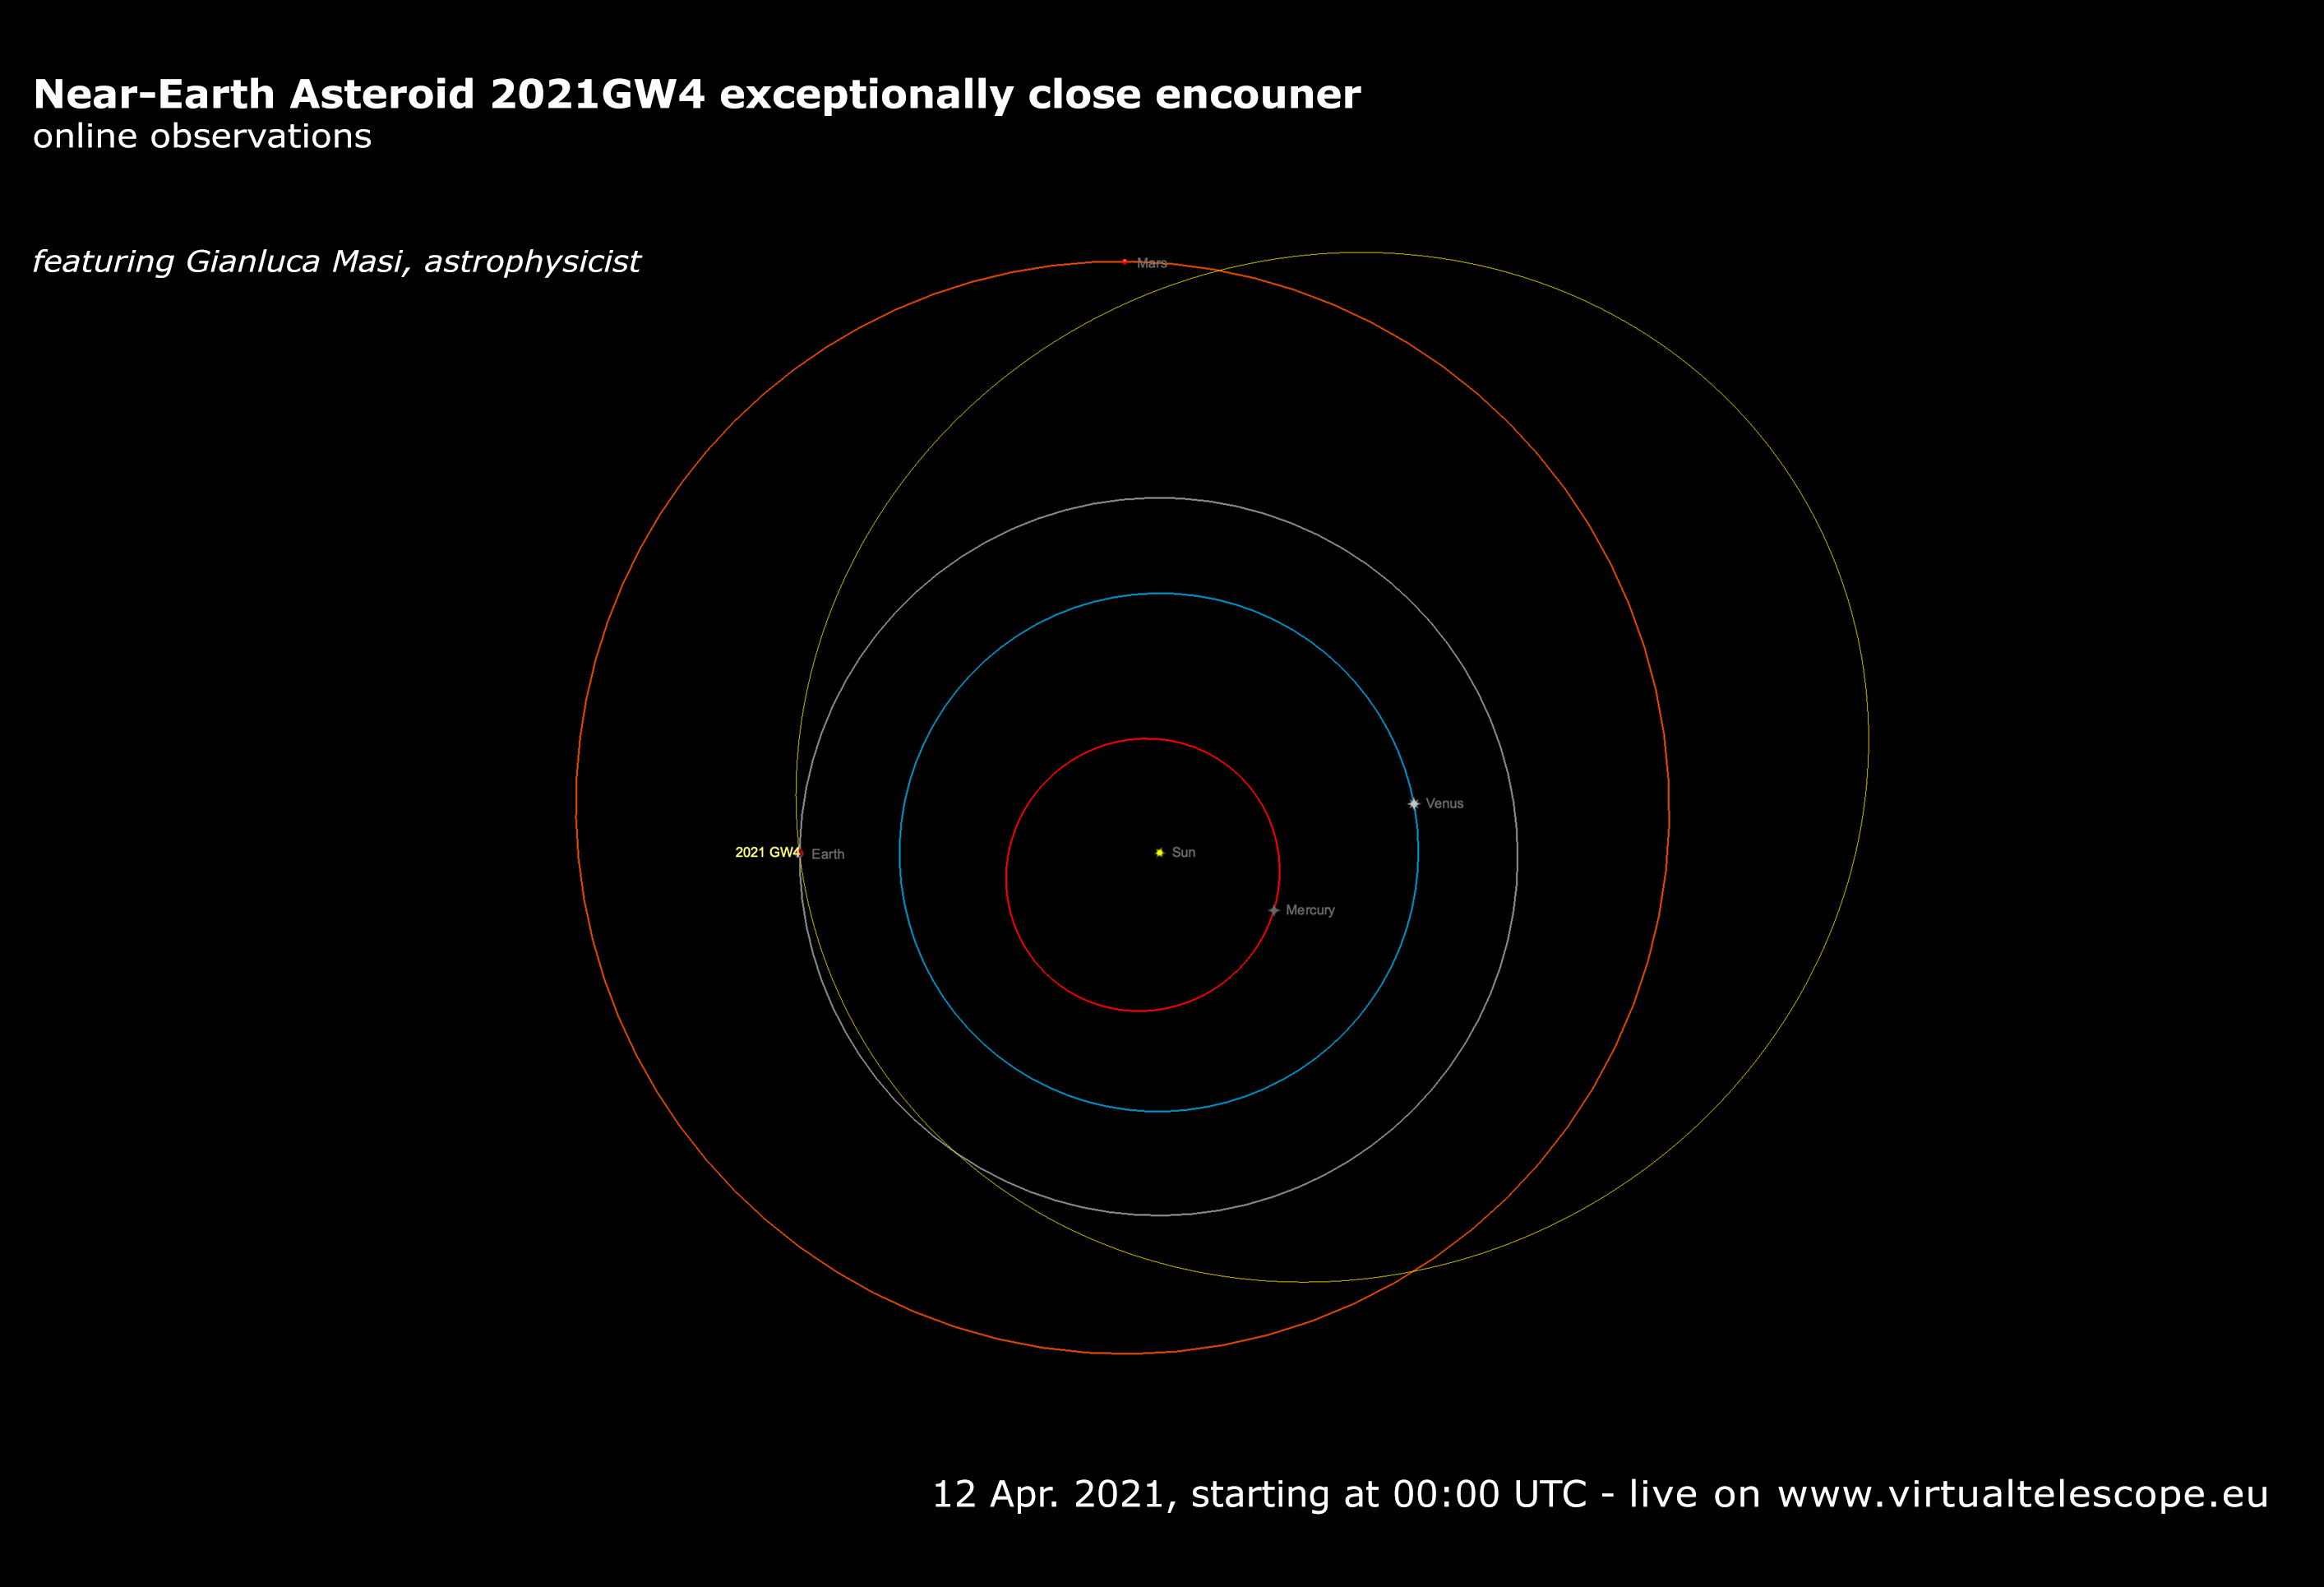 Near-Earth asteroid 2021 GW4: poster of the event.